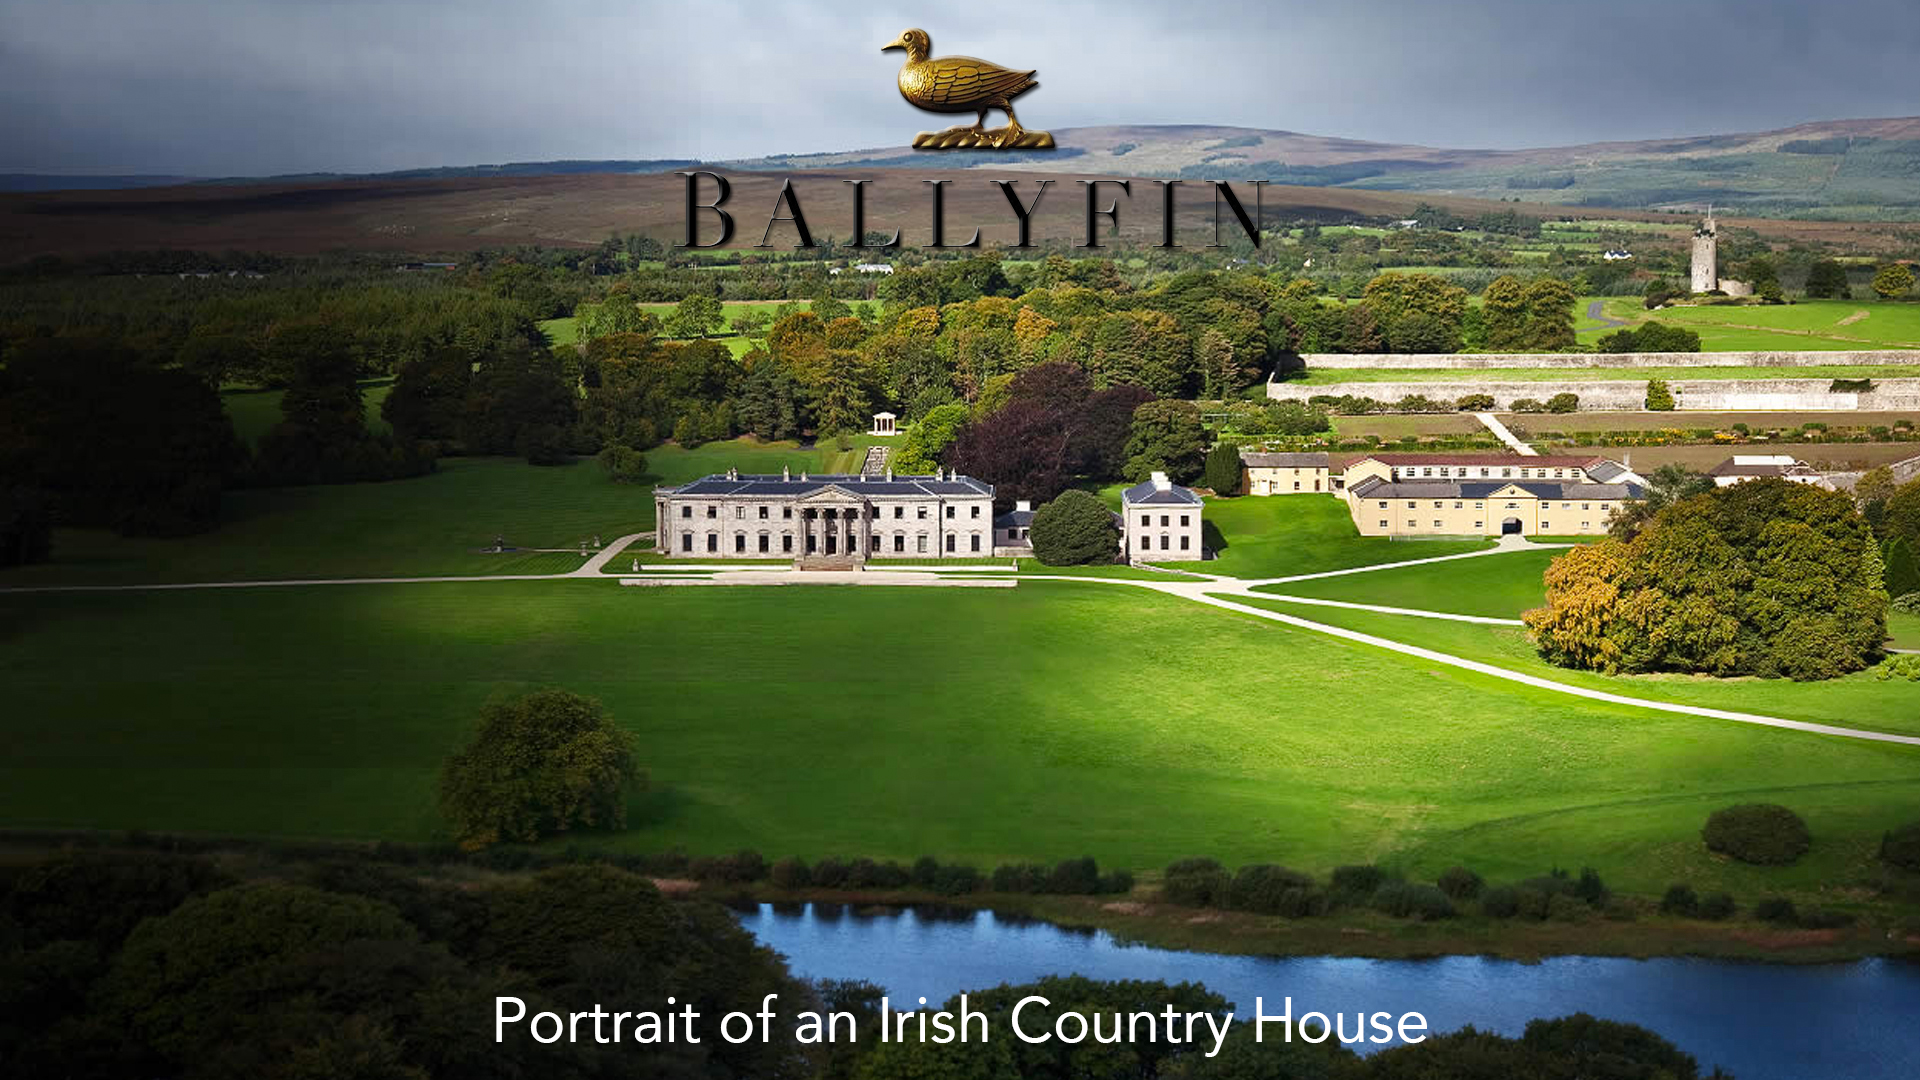 Ballyfin: Portrait of an Irish Country House